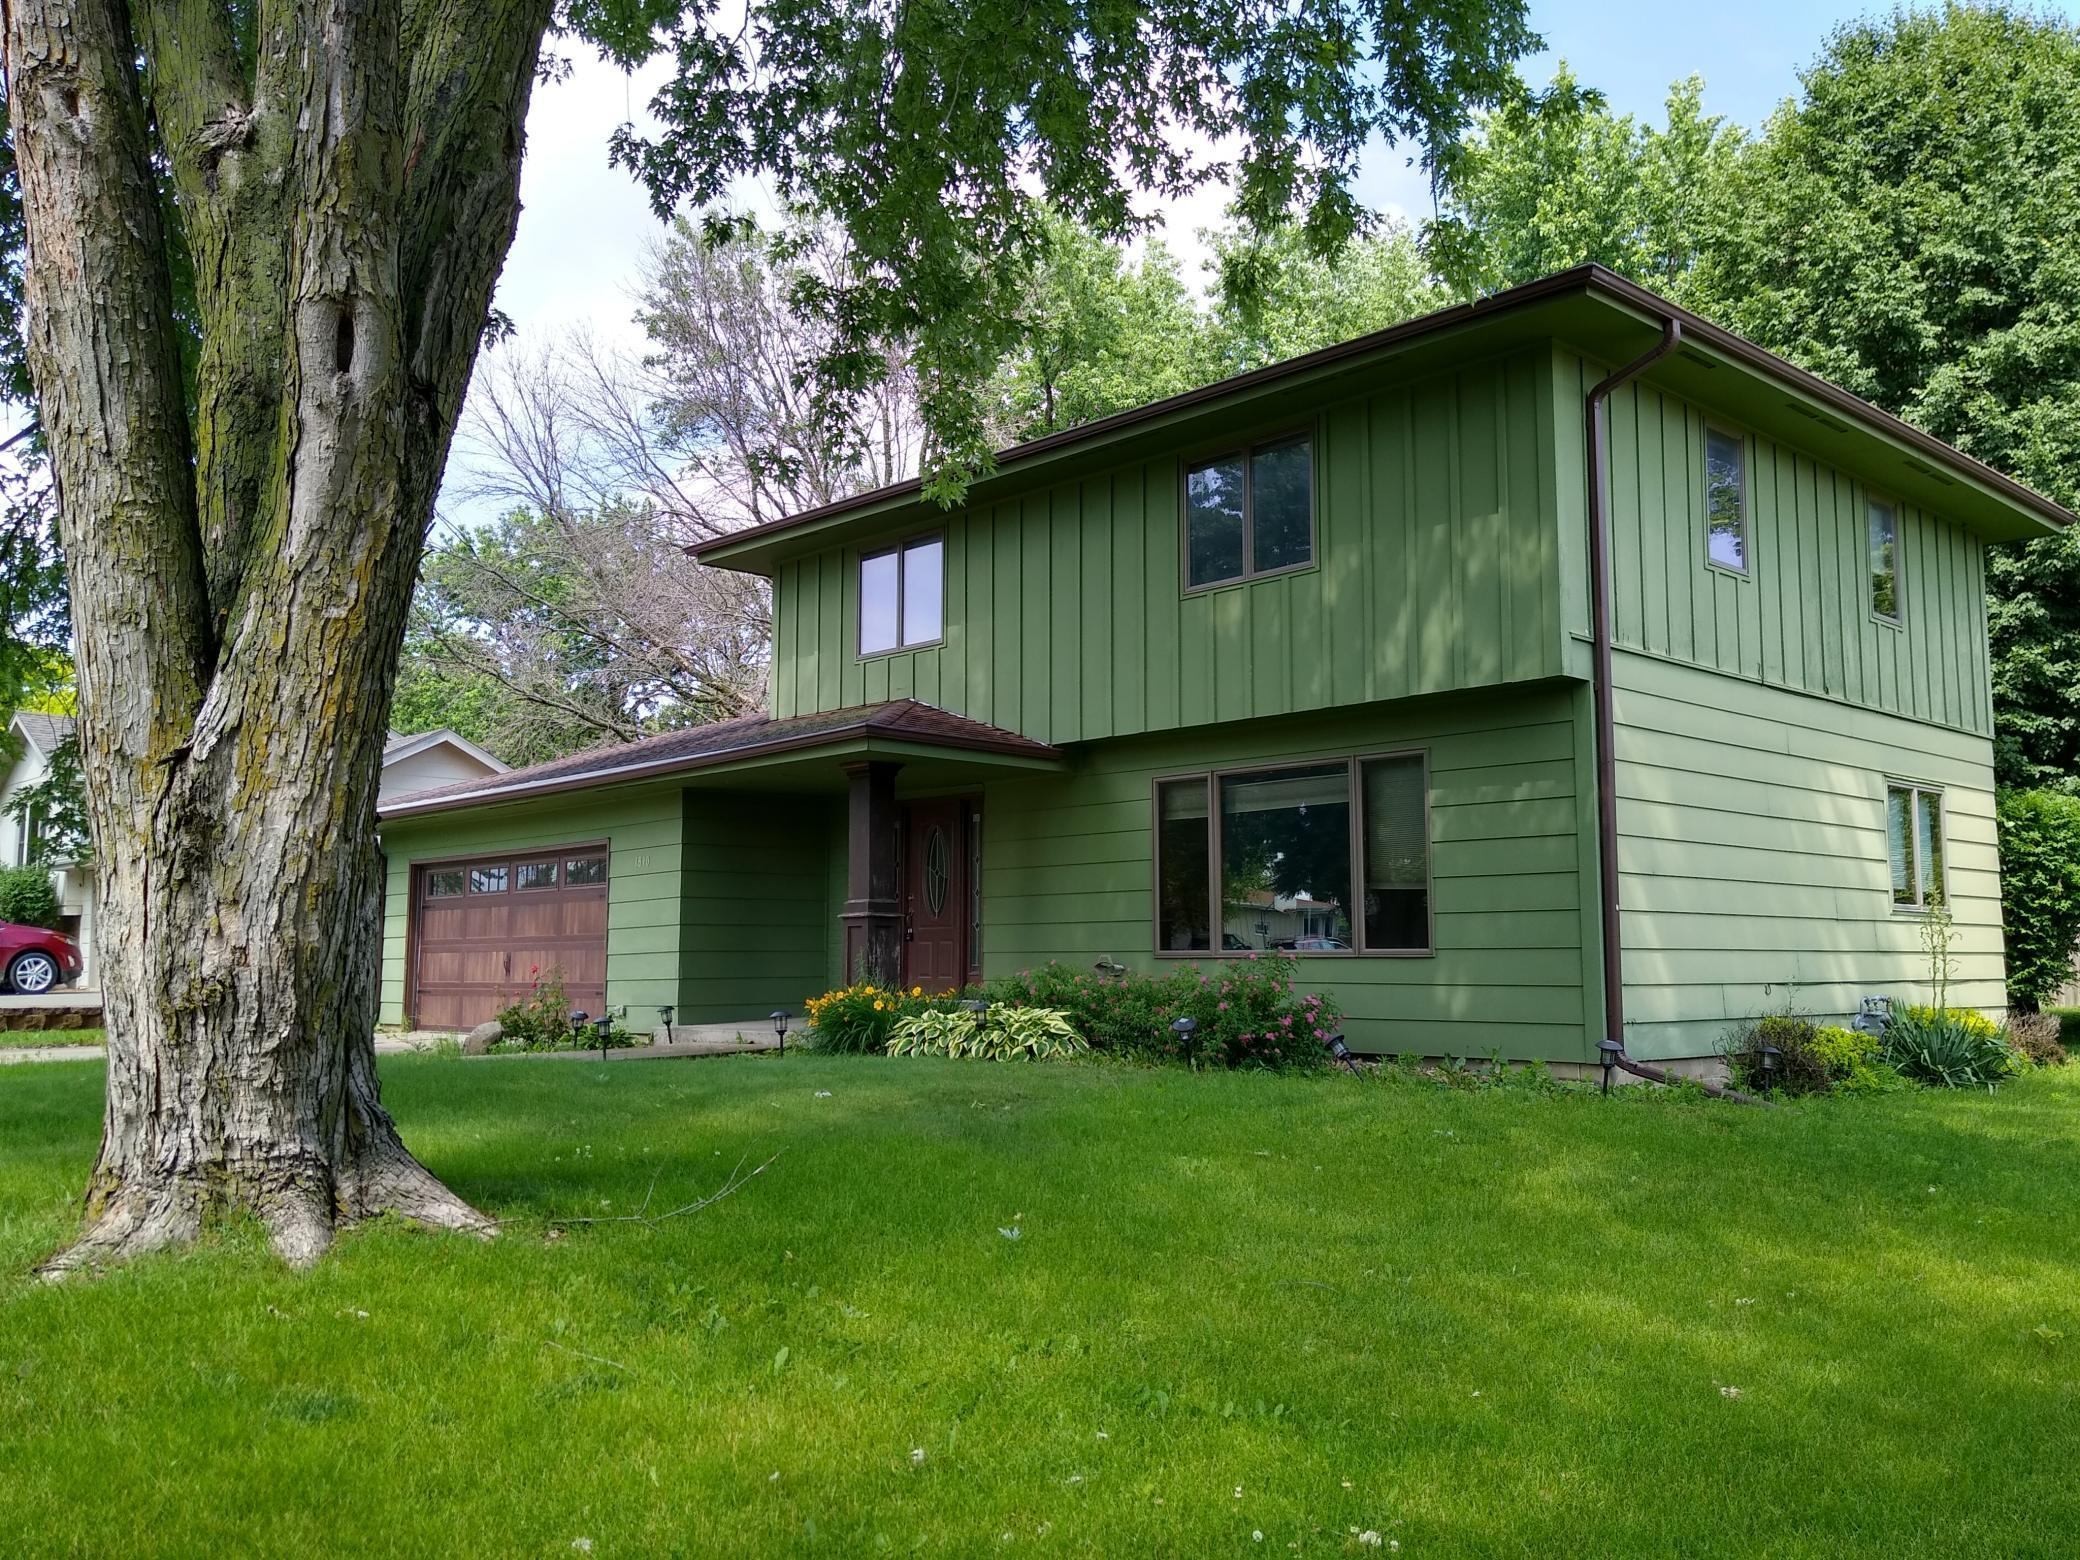 1810 Sunset, Grinnell, Iowa 50112, 3 Bedrooms Bedrooms, ,2 BathroomsBathrooms,Single Family,For Sale,Sunset,5462426